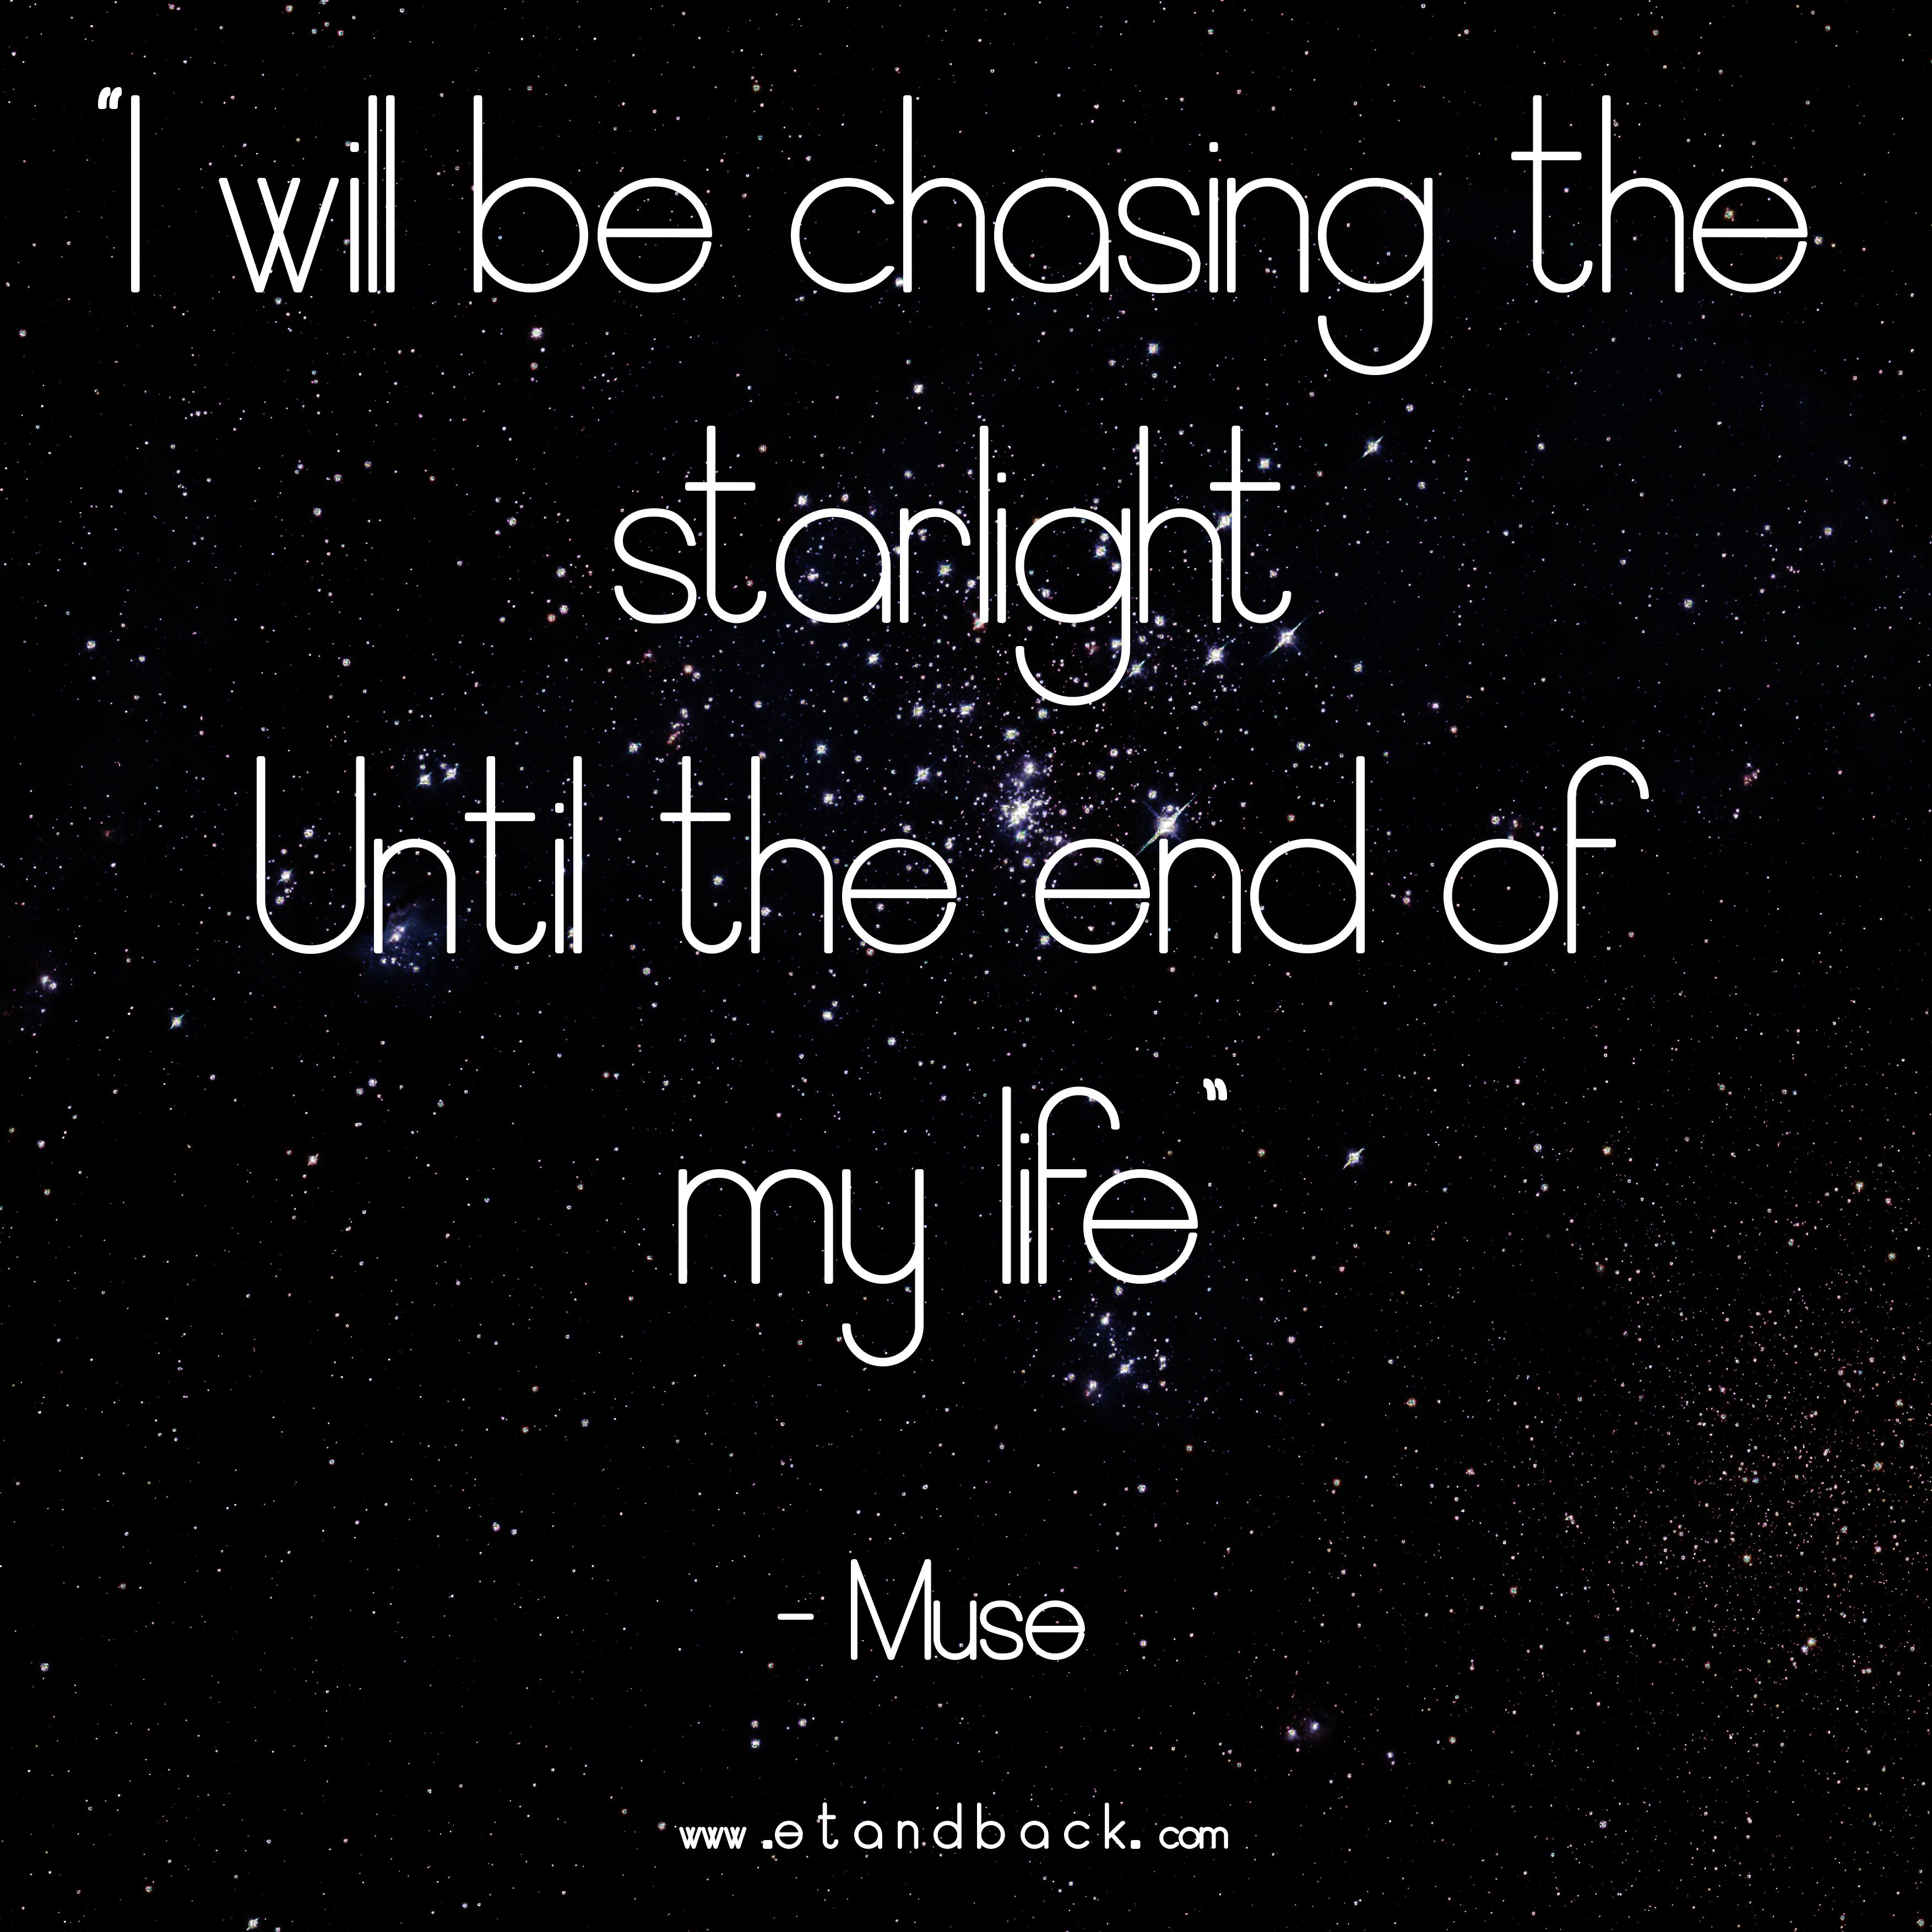 Quotes For End Of Life I Will Be Chasing The Starlight Until The End Of My Life  Muse